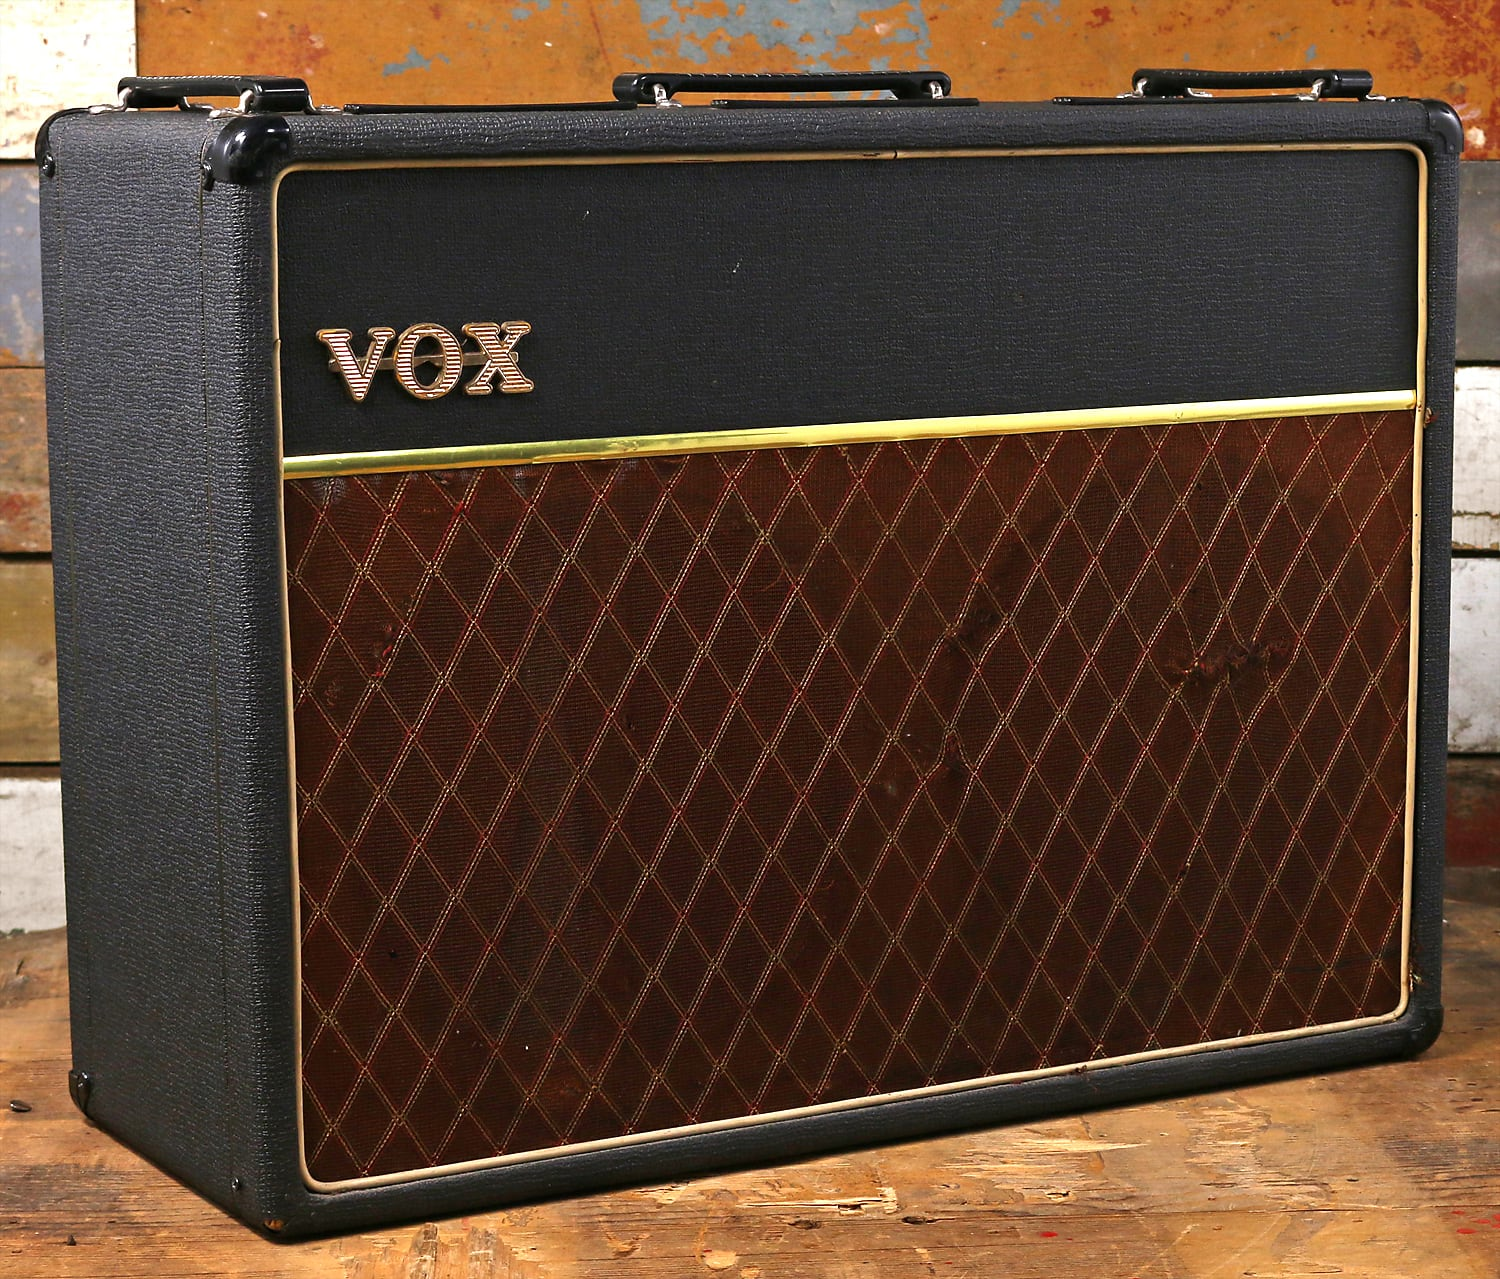 Image result for Vox ac30